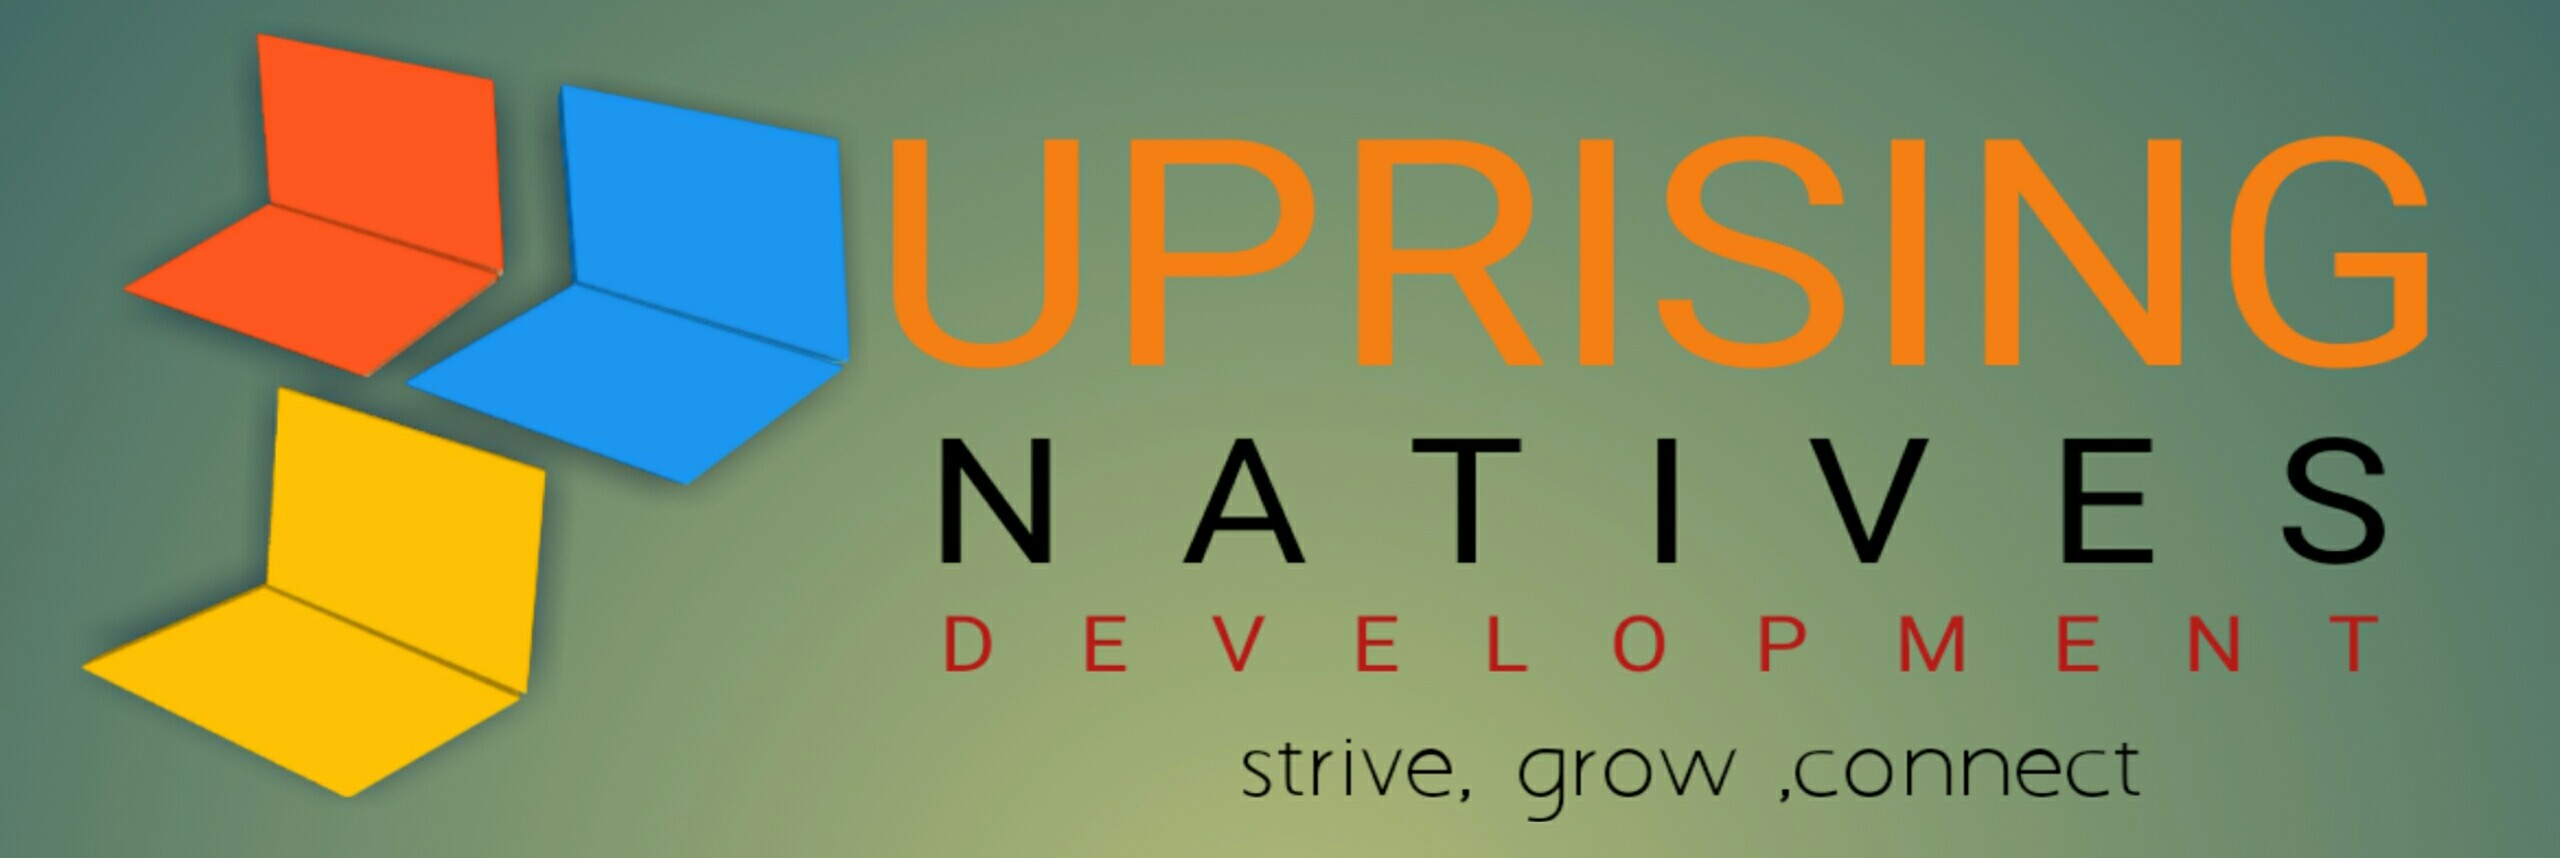 Uprising Natives Development